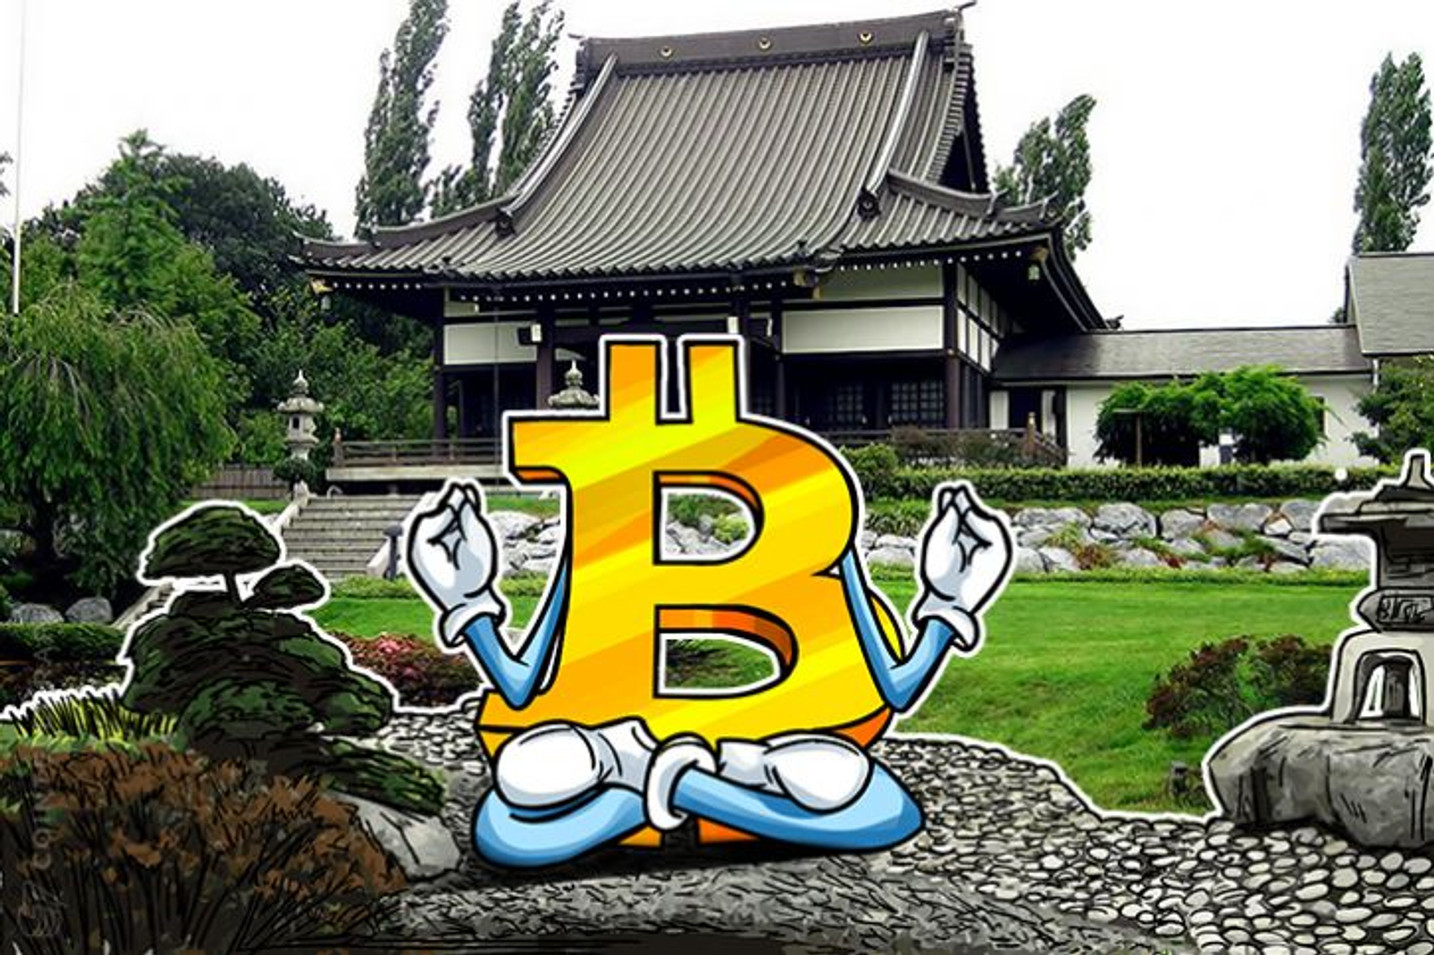 Japan Tops Bitcoin Trade Volumes Again As Poland Takes Surprise 6th Place